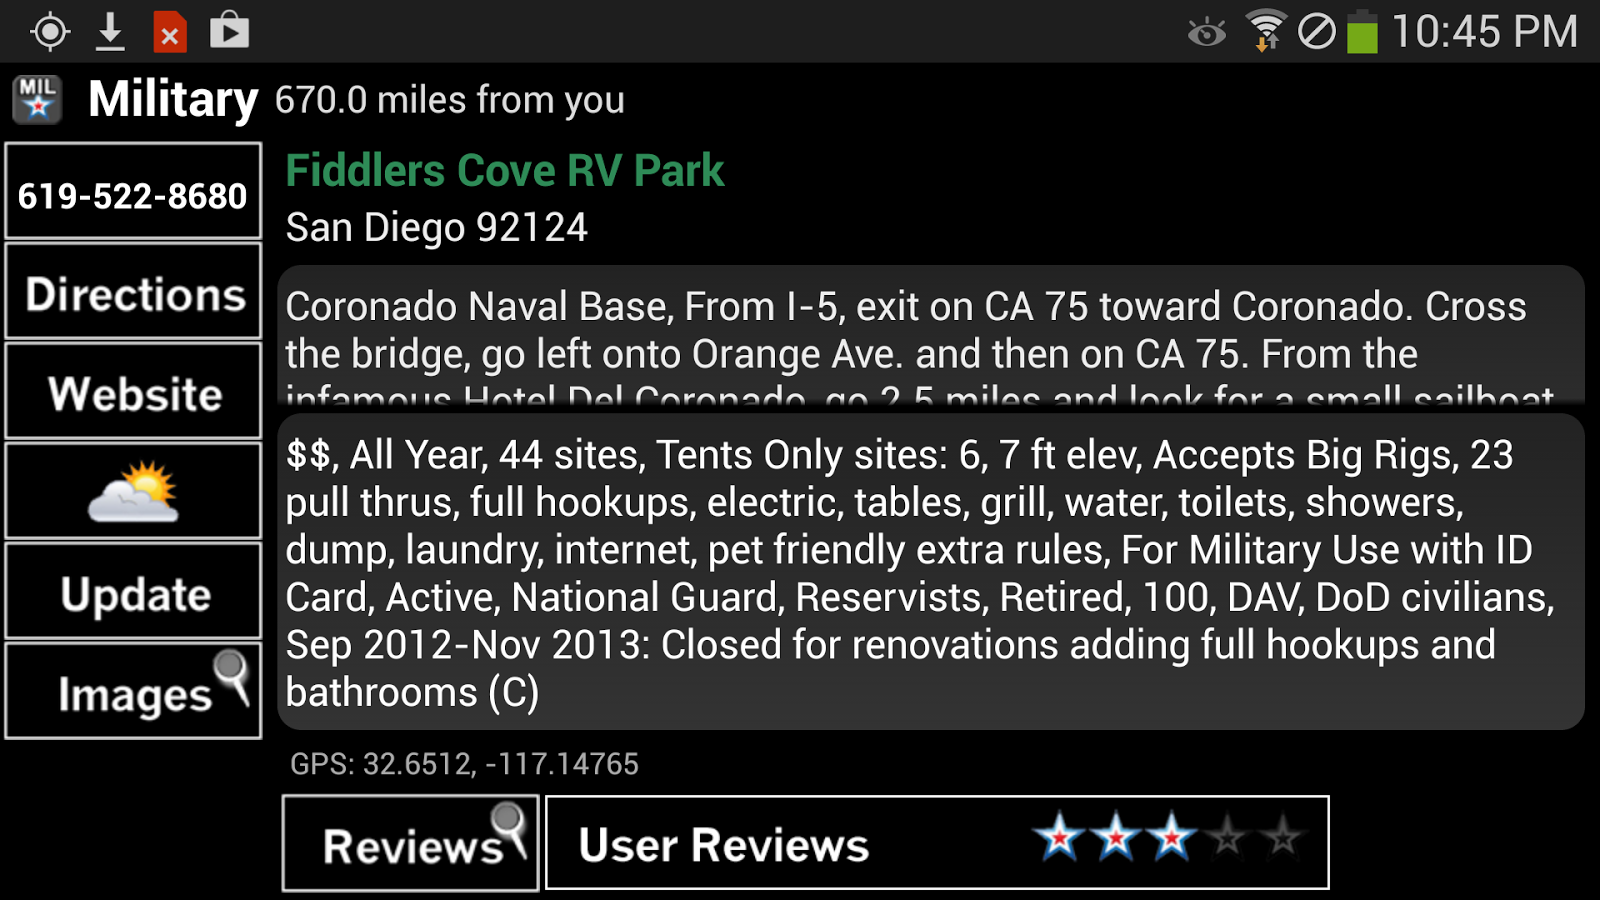 Military Campgrounds RV Parks - screenshot